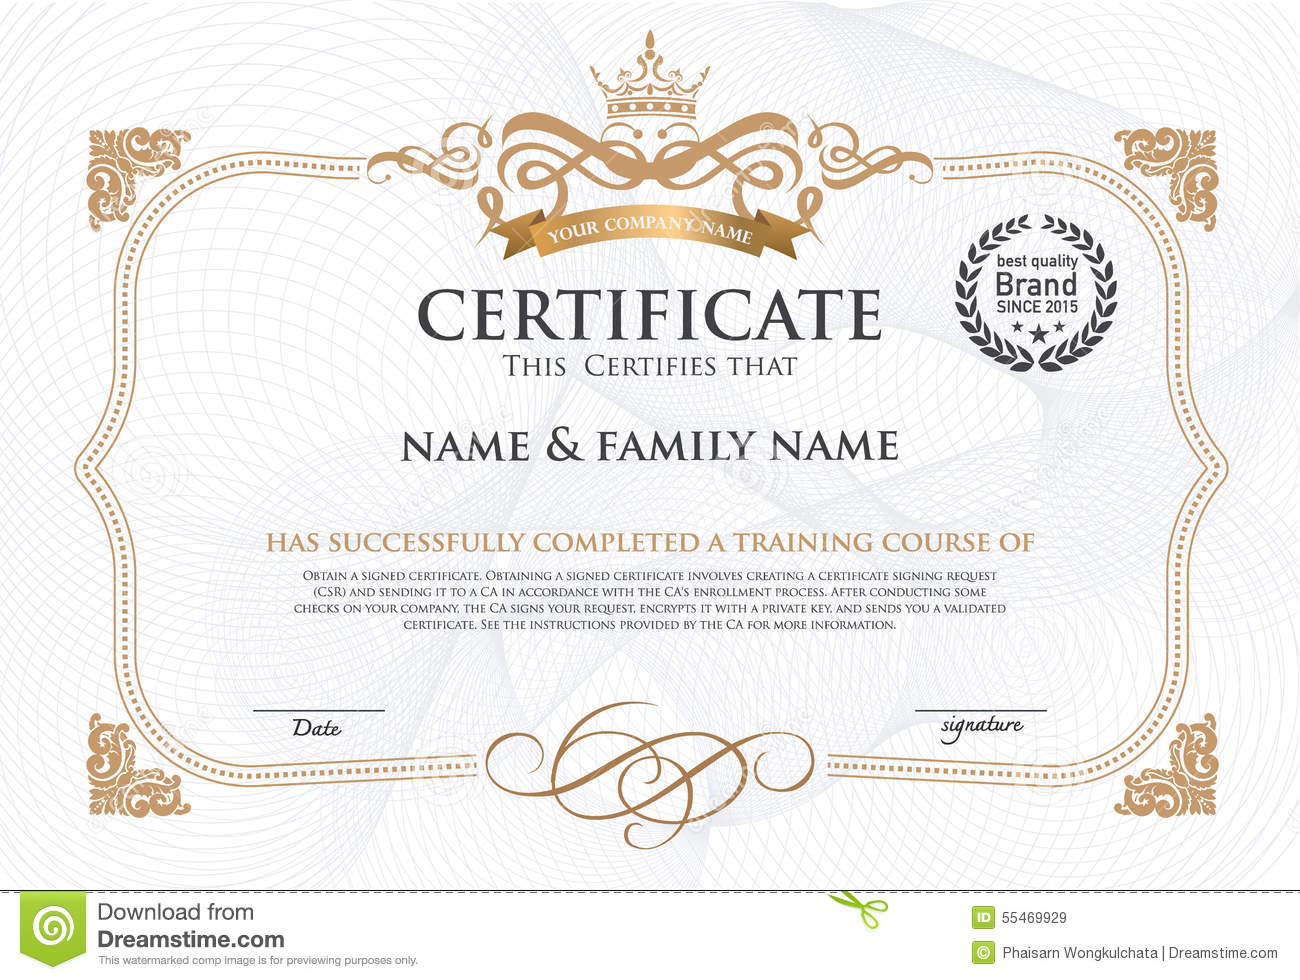 Certificate design template stock vector illustration of certificate design template 1betcityfo Images